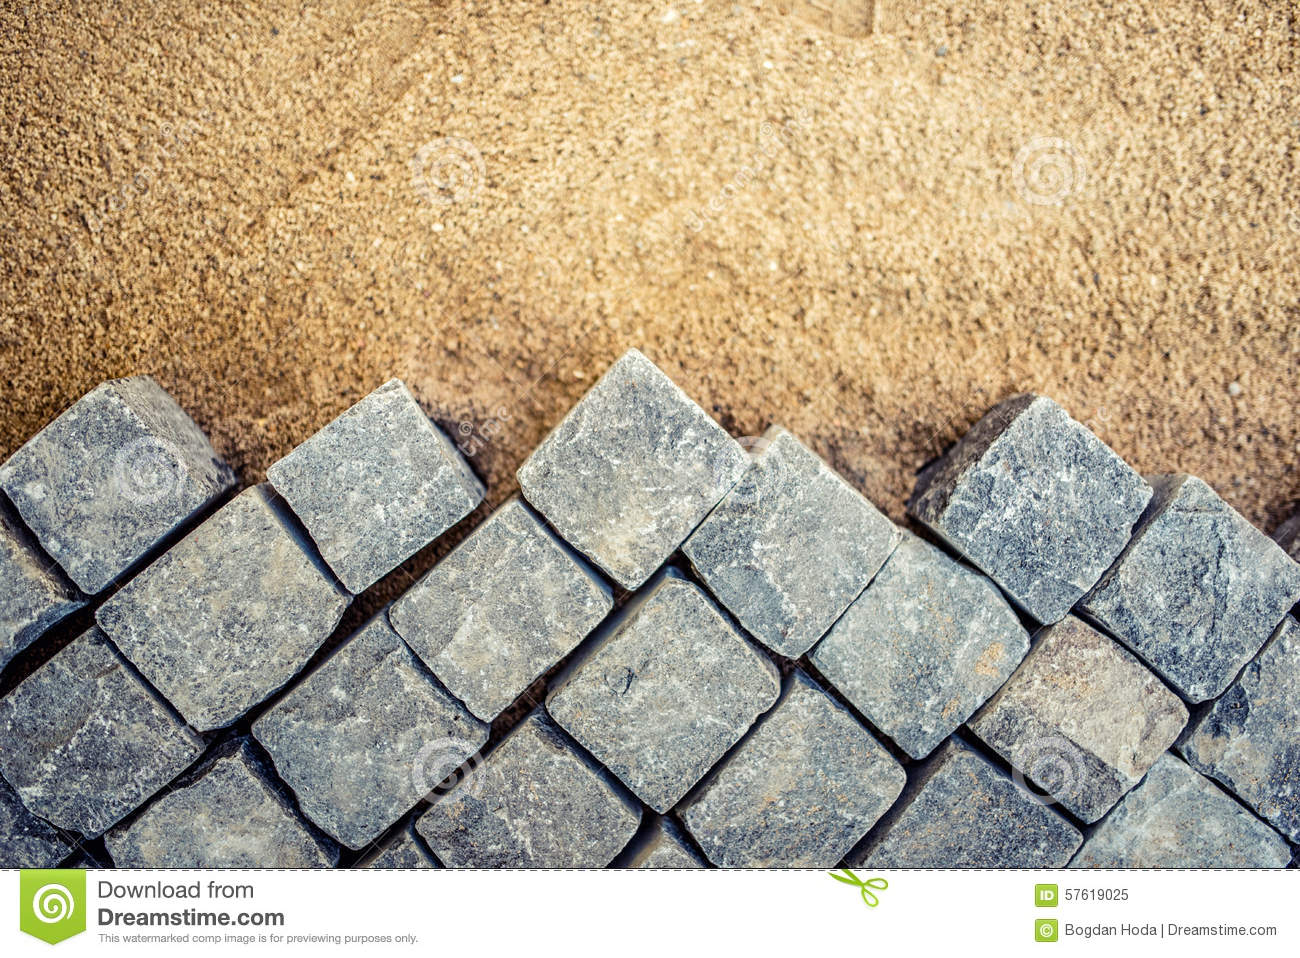 Granite Building Blocks : Stone pavement royalty free stock photo cartoondealer